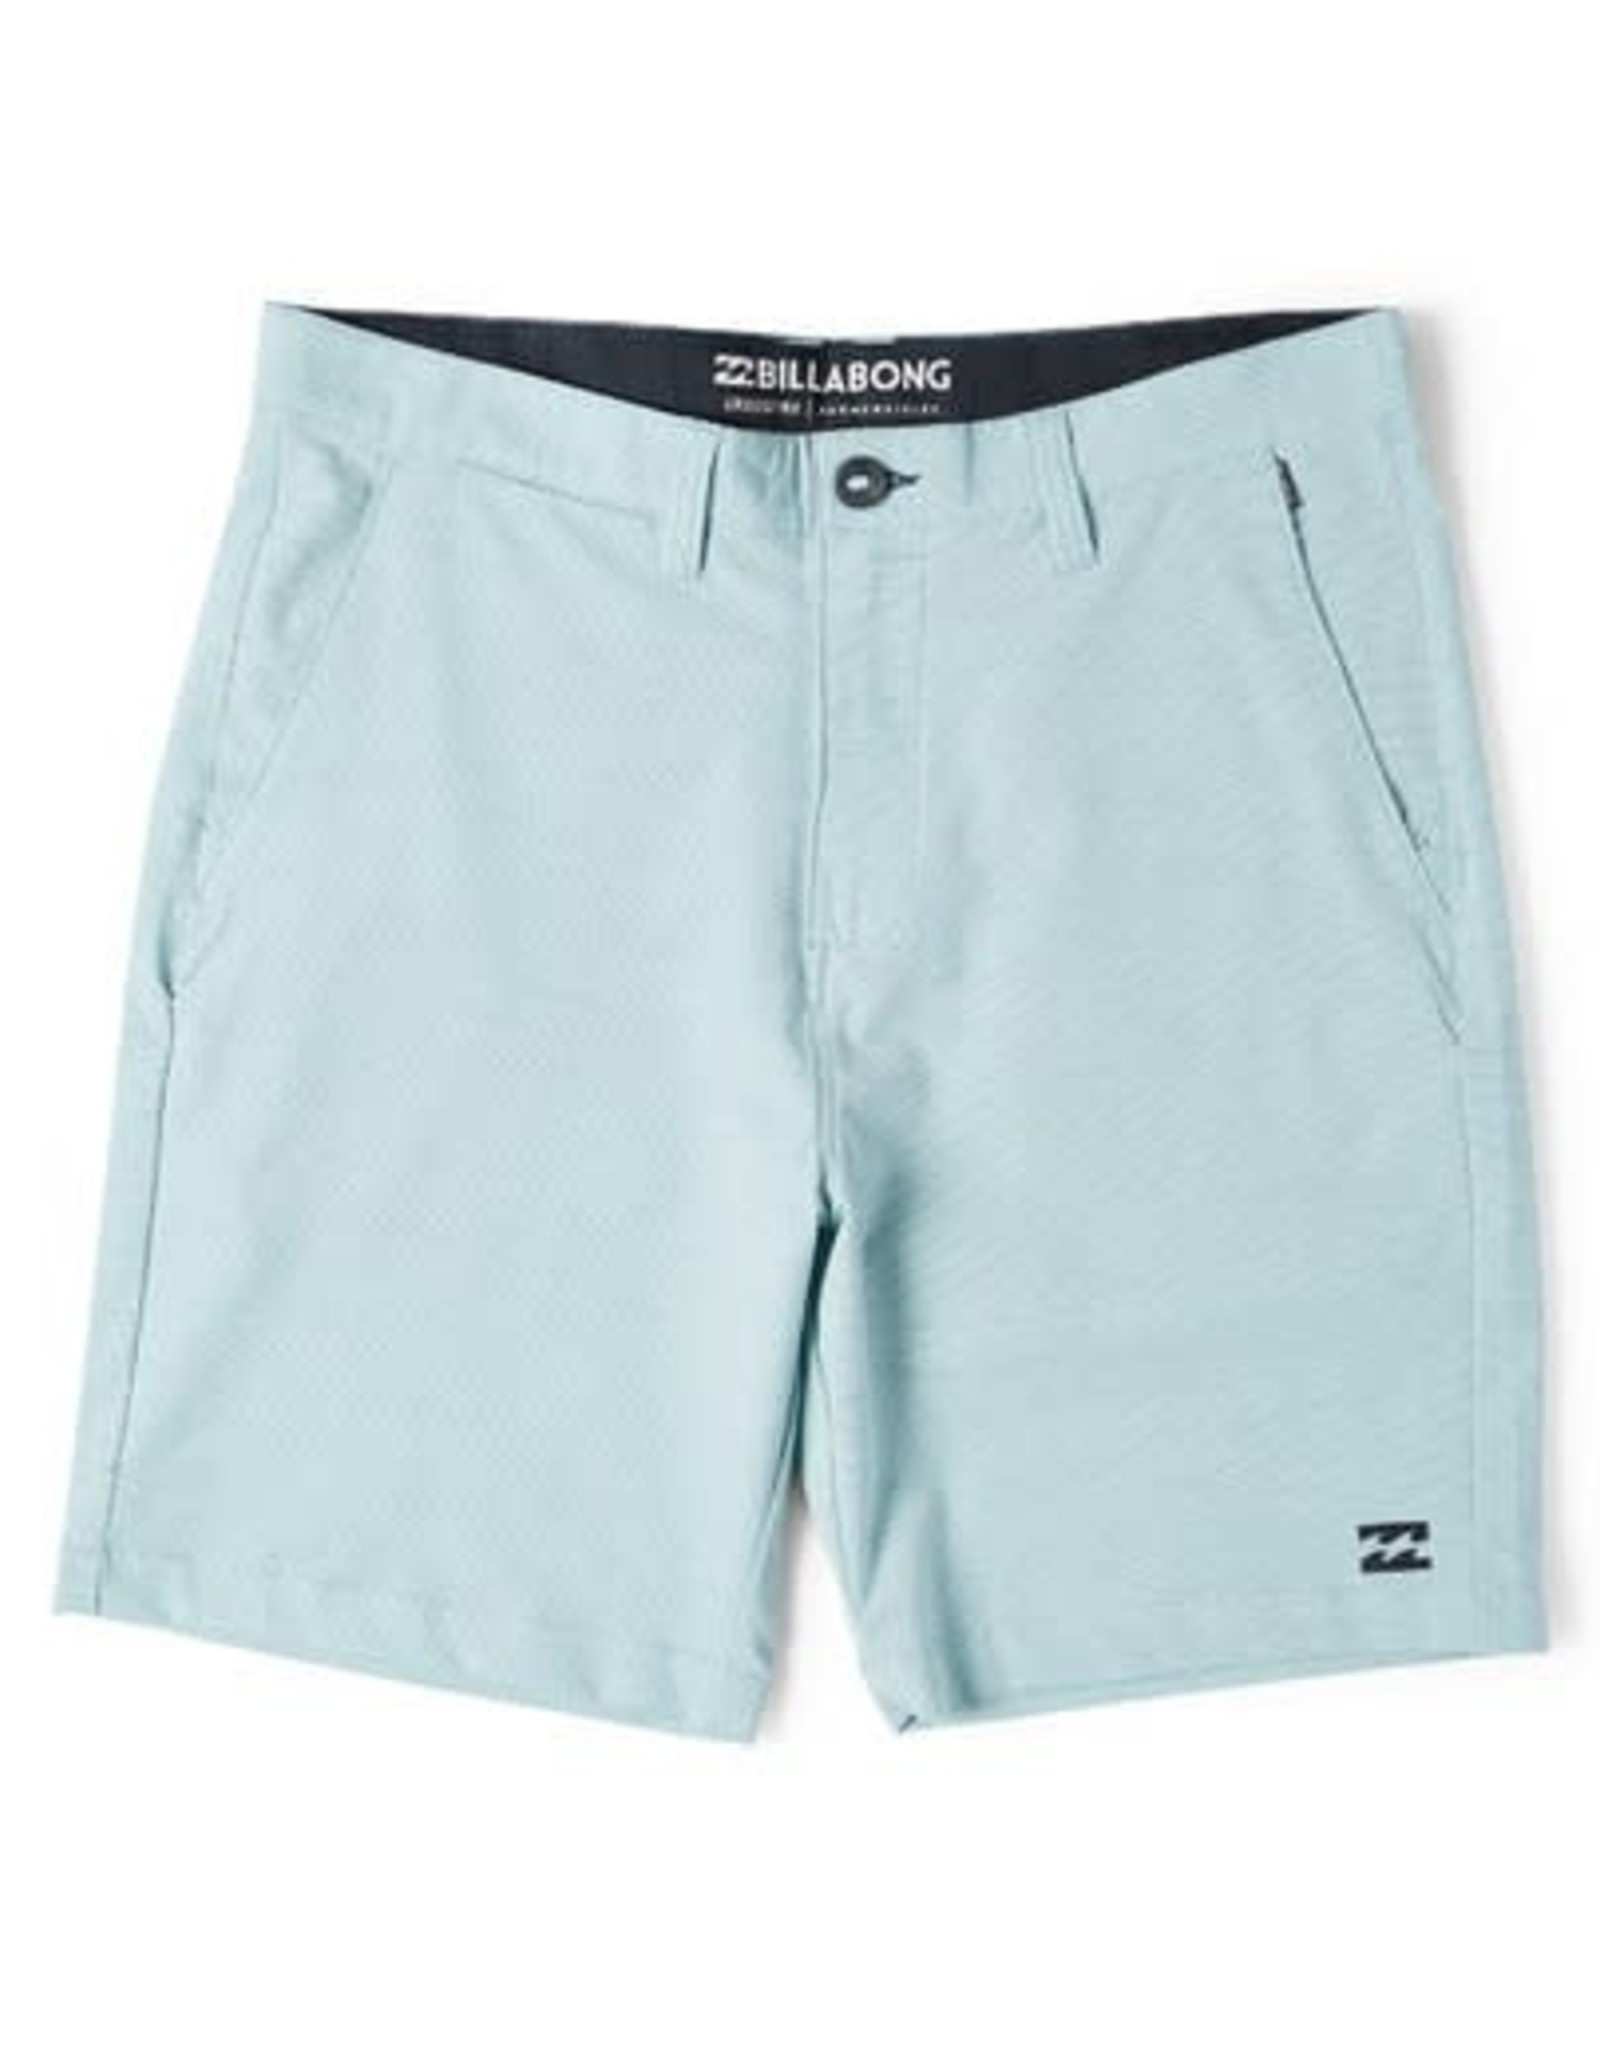 billabong Billabong crossfire x w/s style m201vbcm